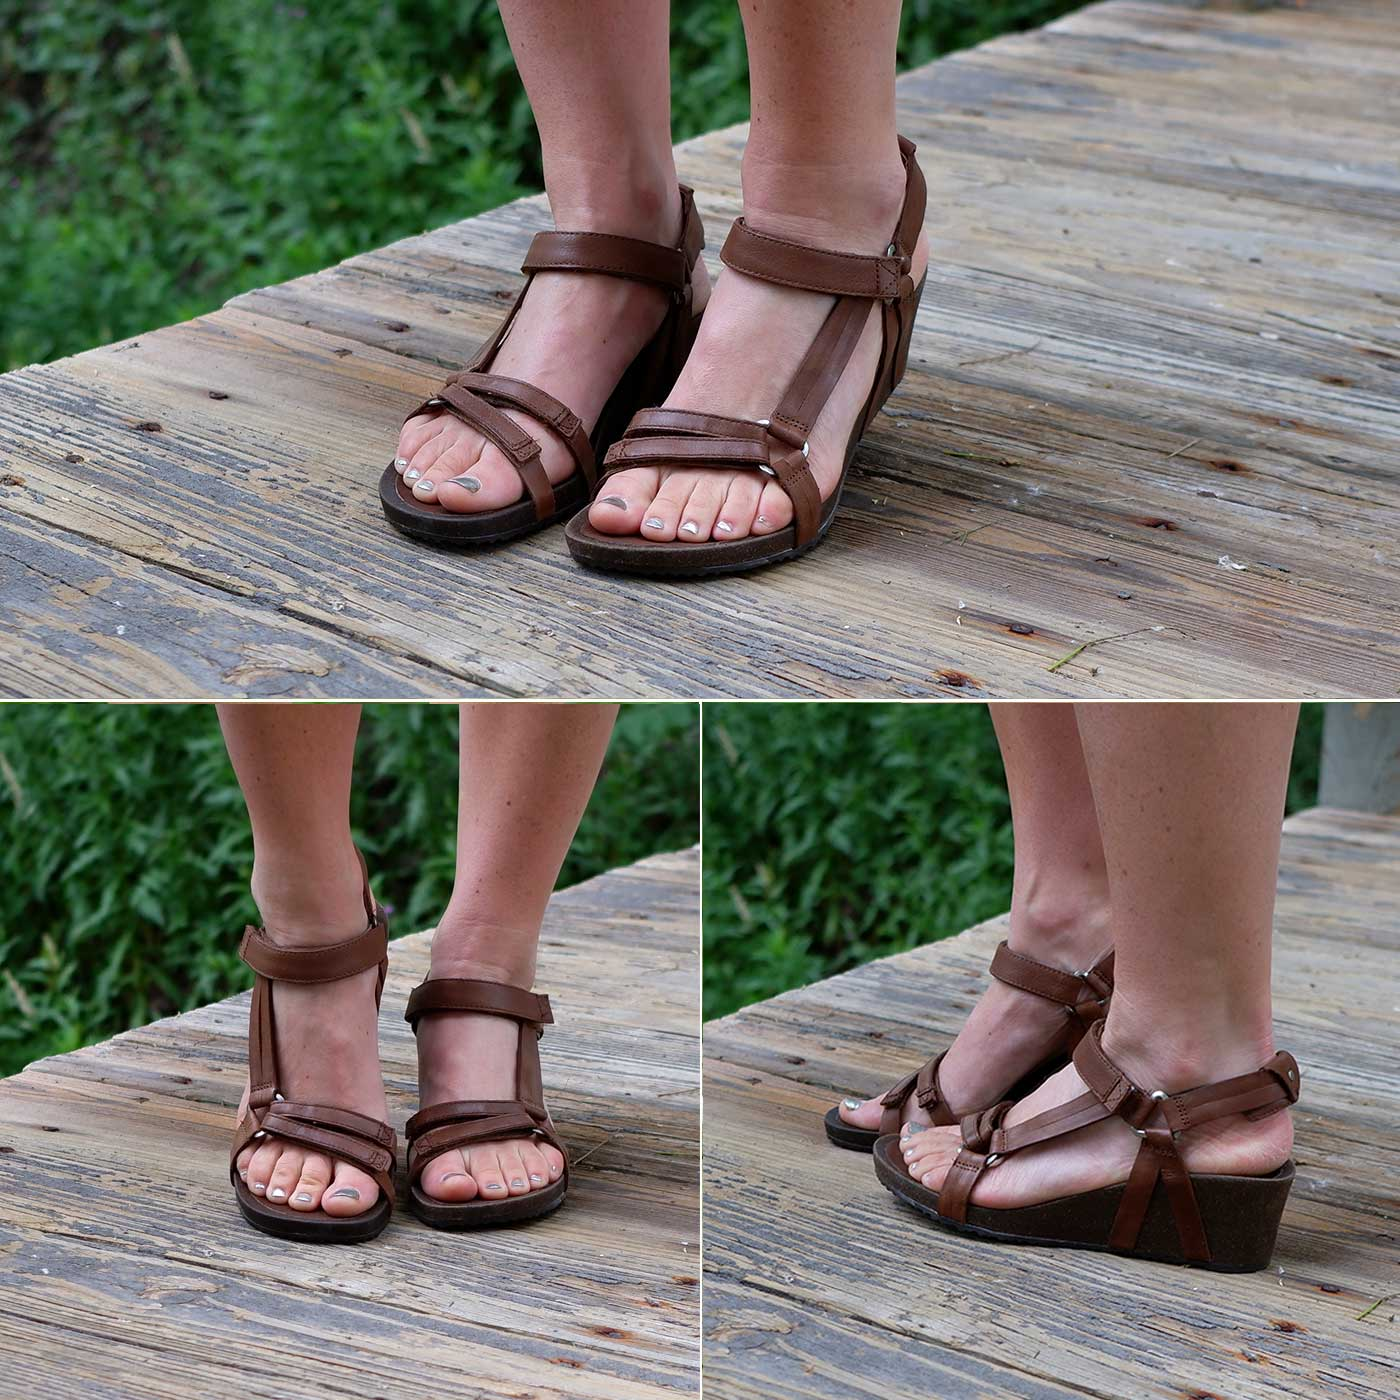 e4623911697 5 Teva Sandals   Shoes Every Outdoorsy Girl Should Have